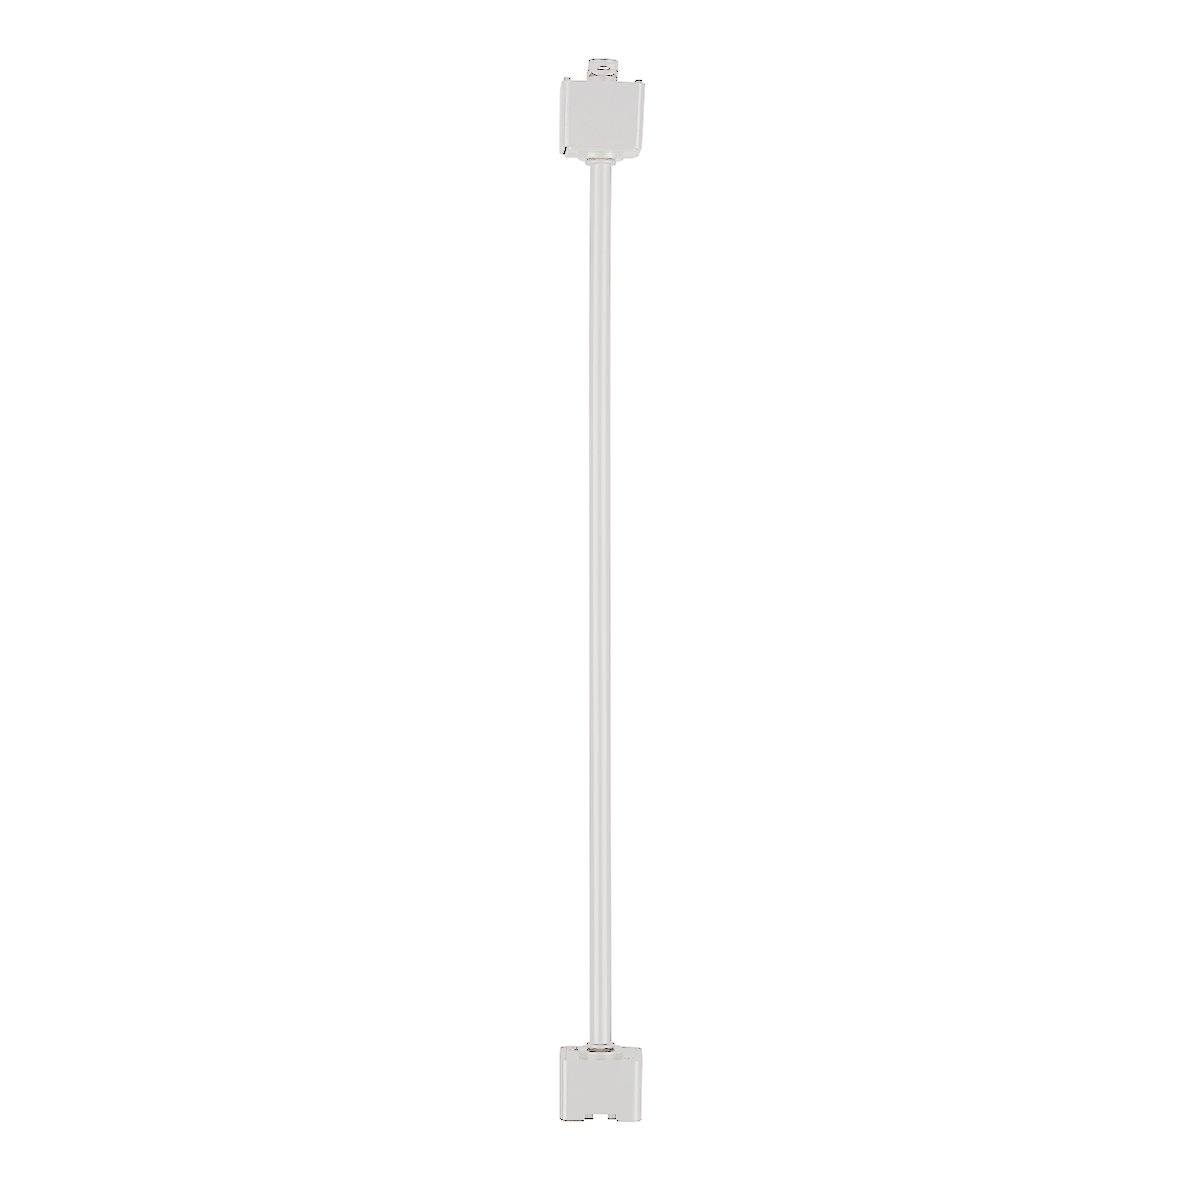 WAC Lighting H36-WT H Track 36'' Extension for Line Voltage H-Track Fixture, White